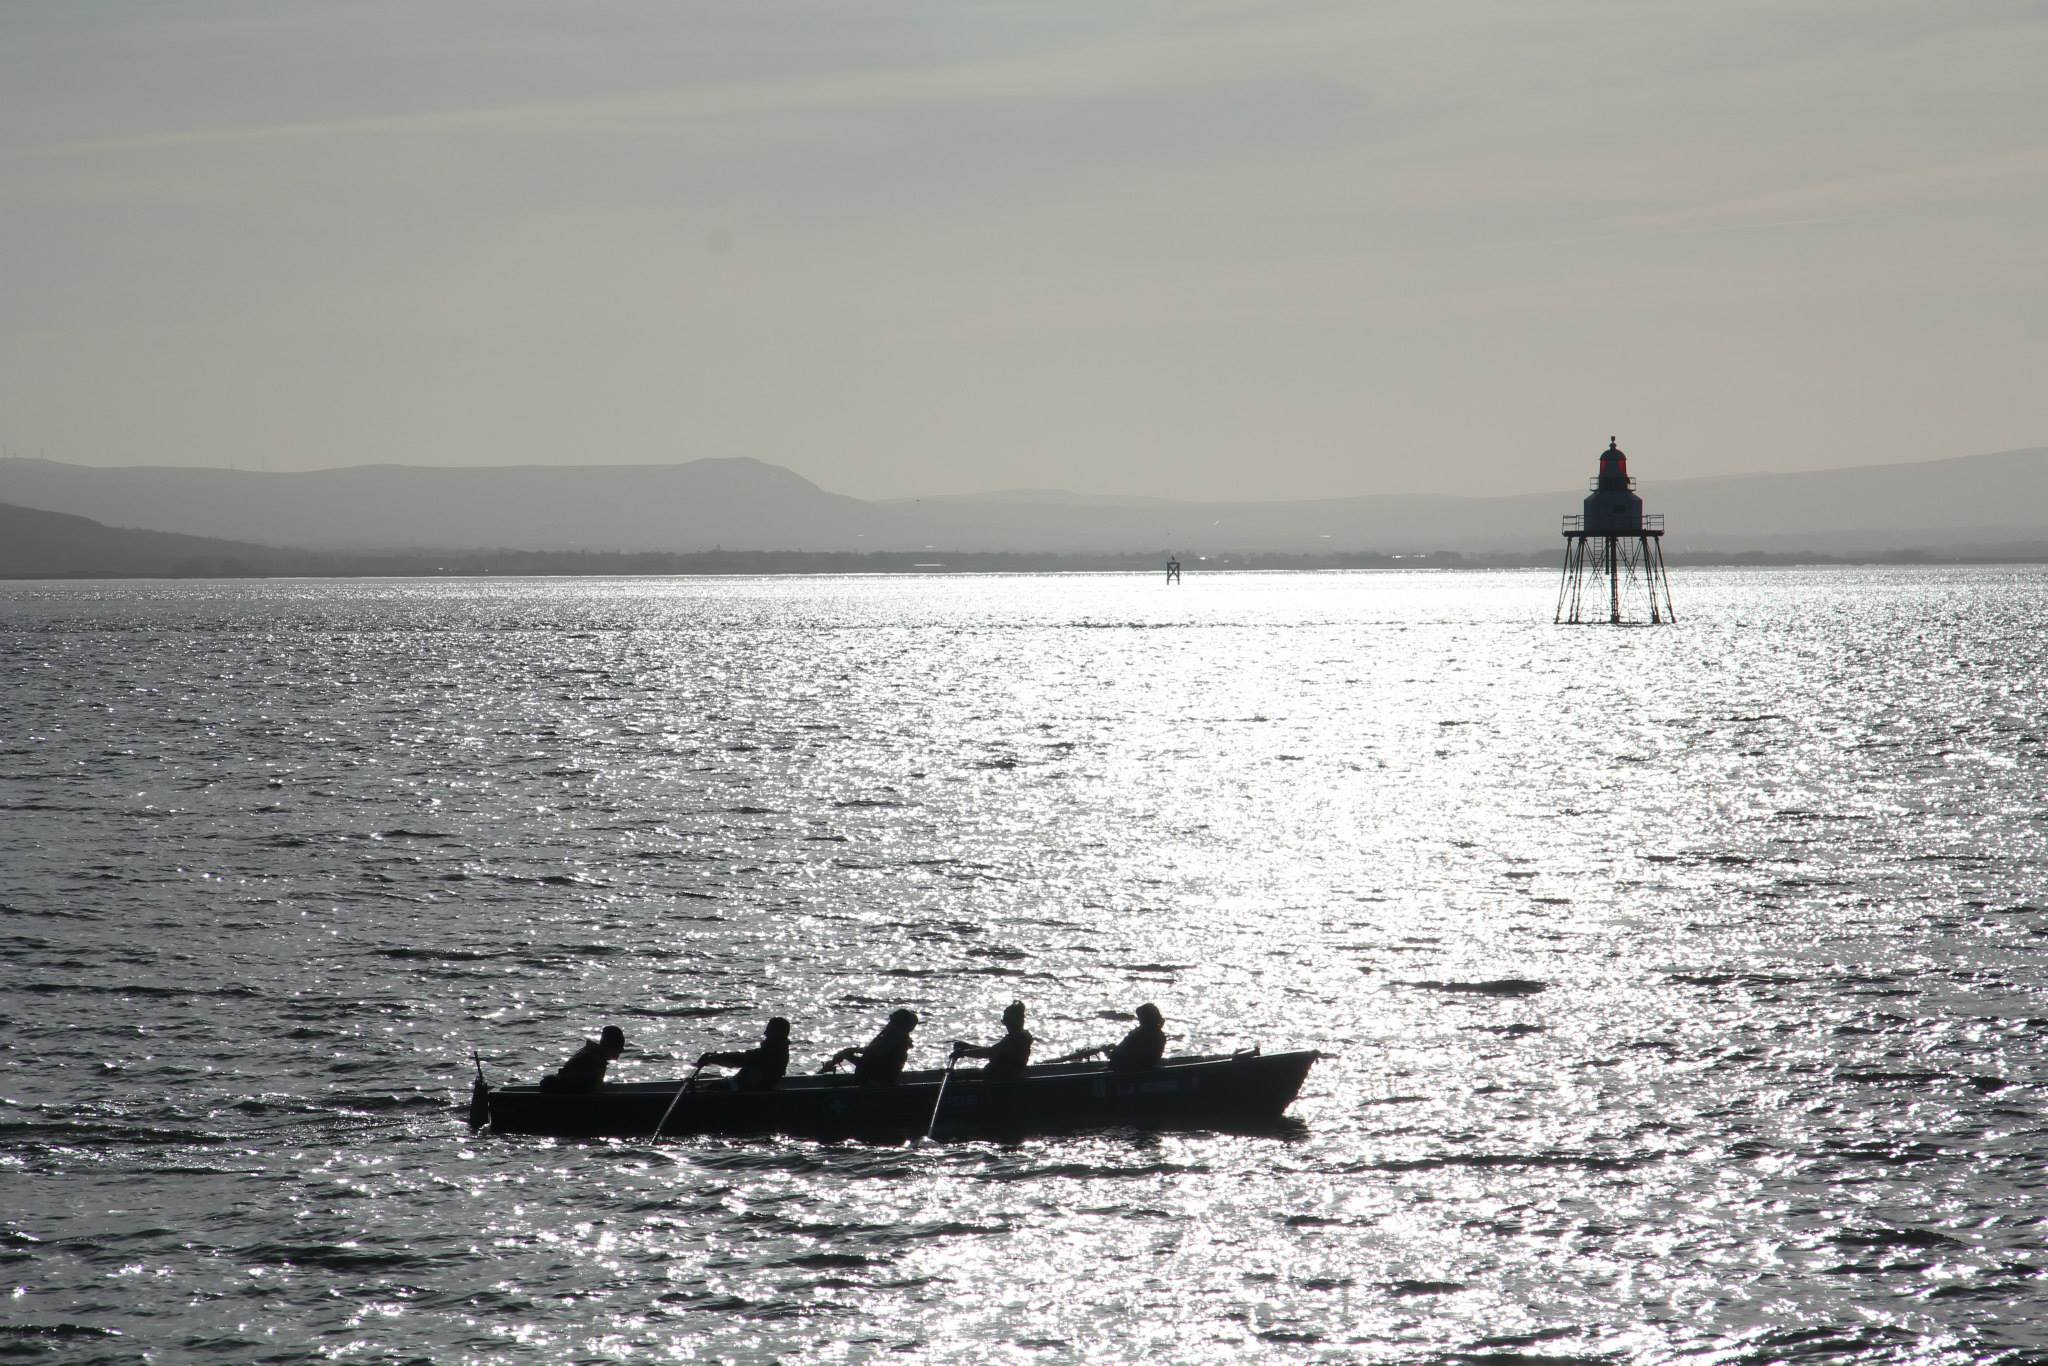 Moville Rowing Club